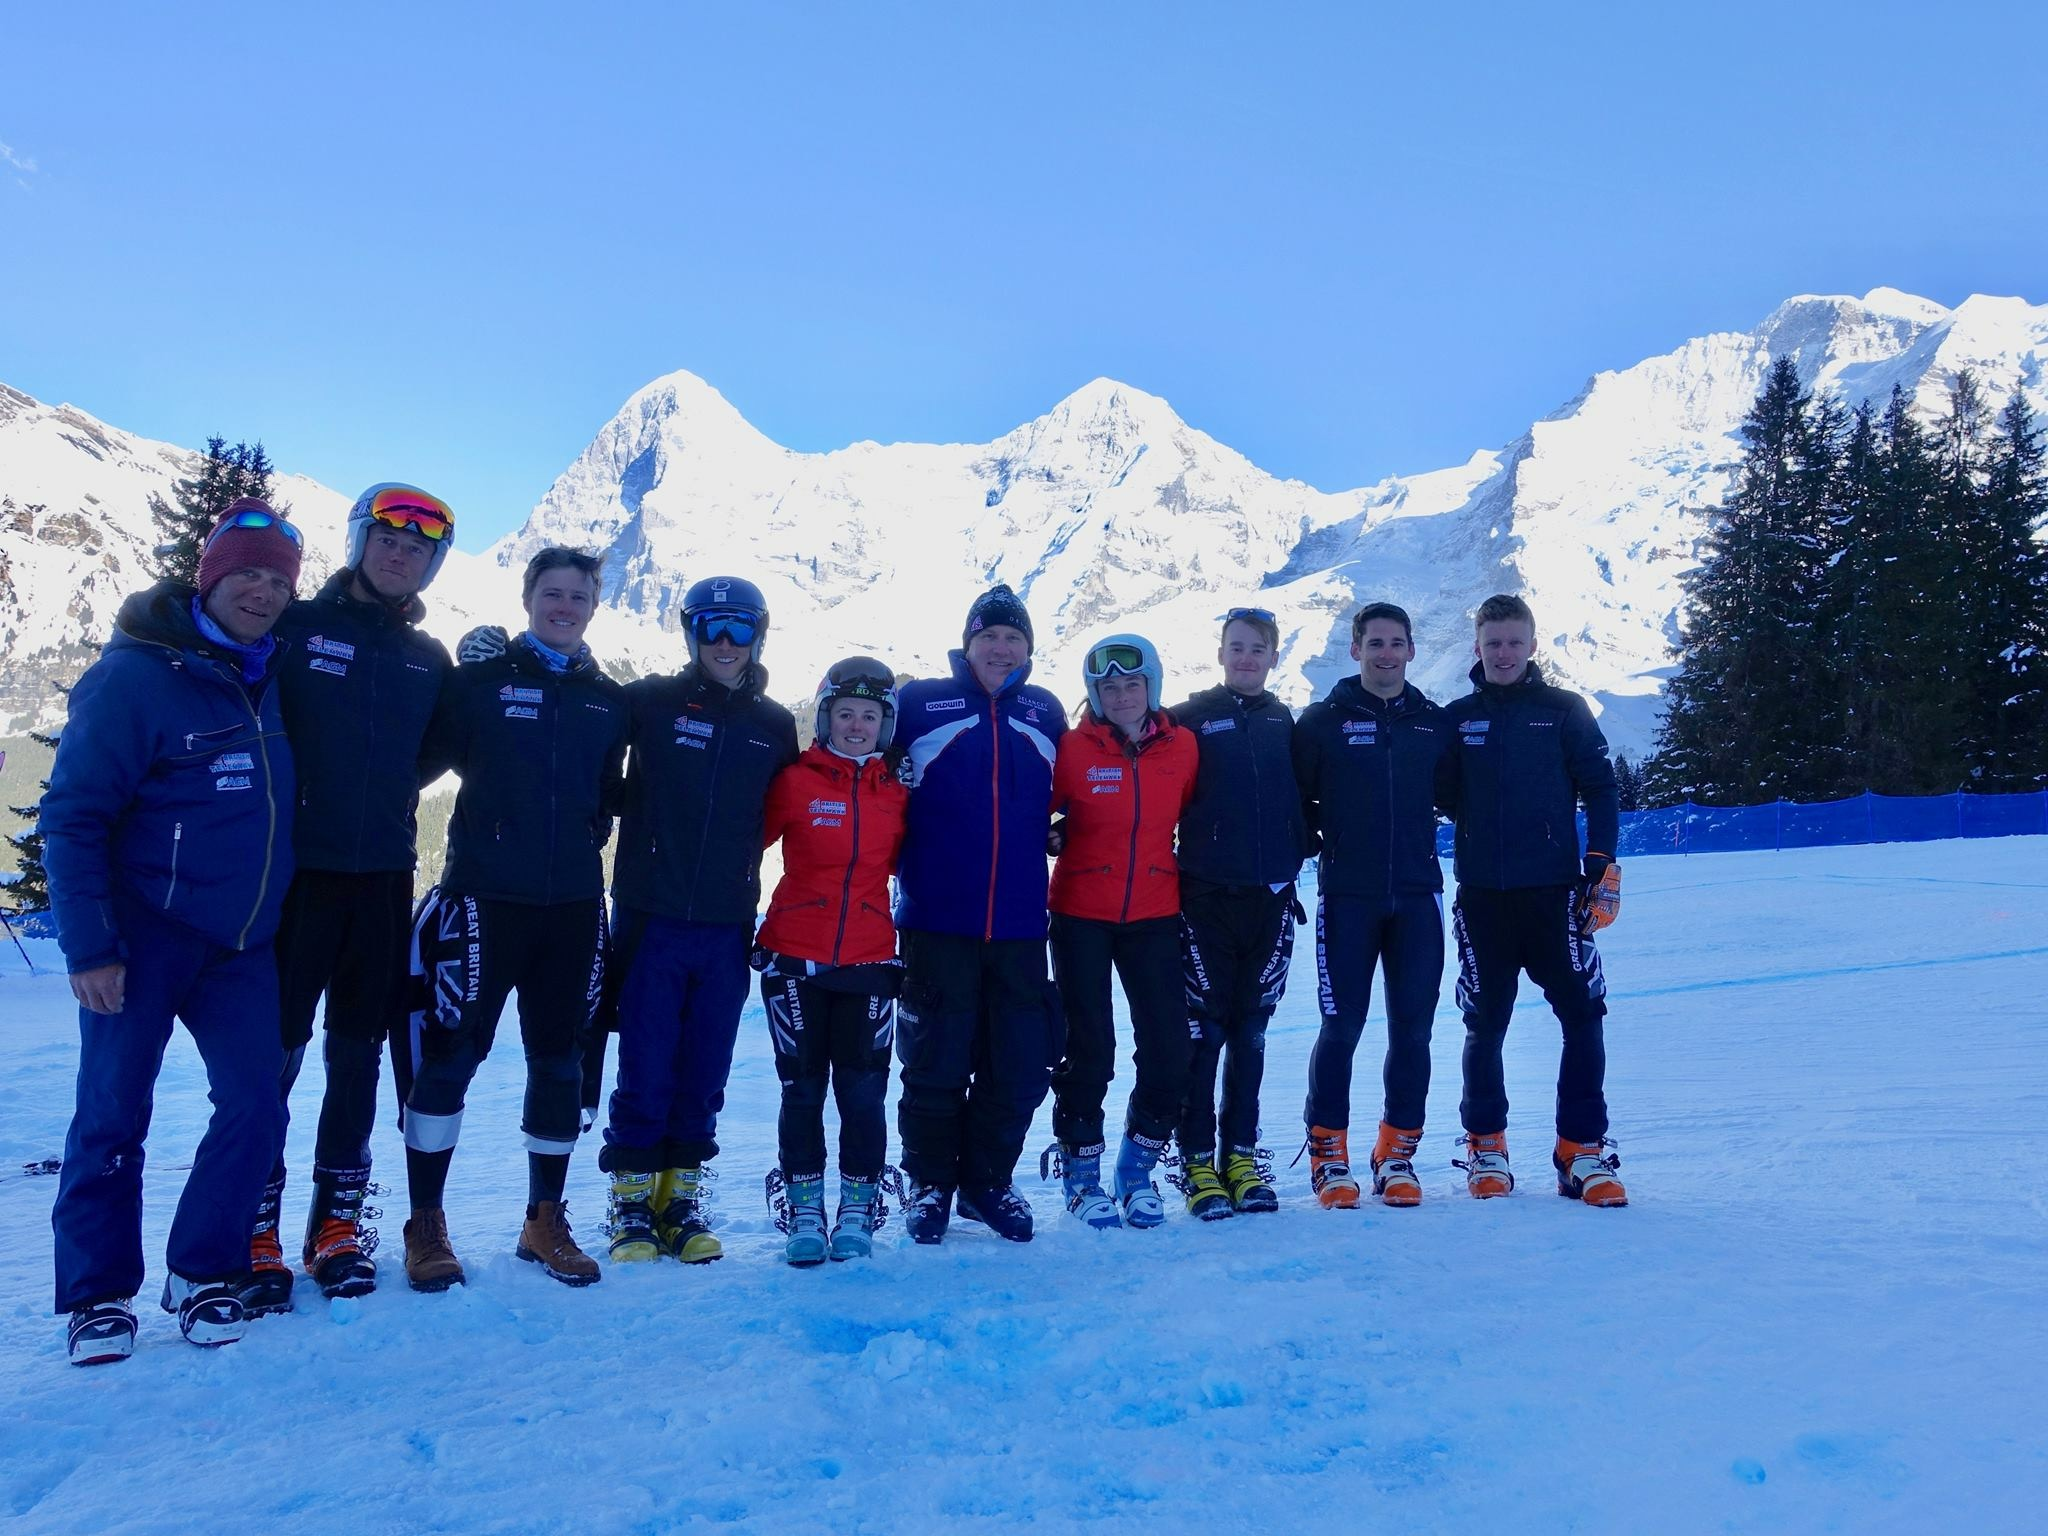 The GB Telemark Ski Team with British Ski & Snowboard CEO, Dave Edwards